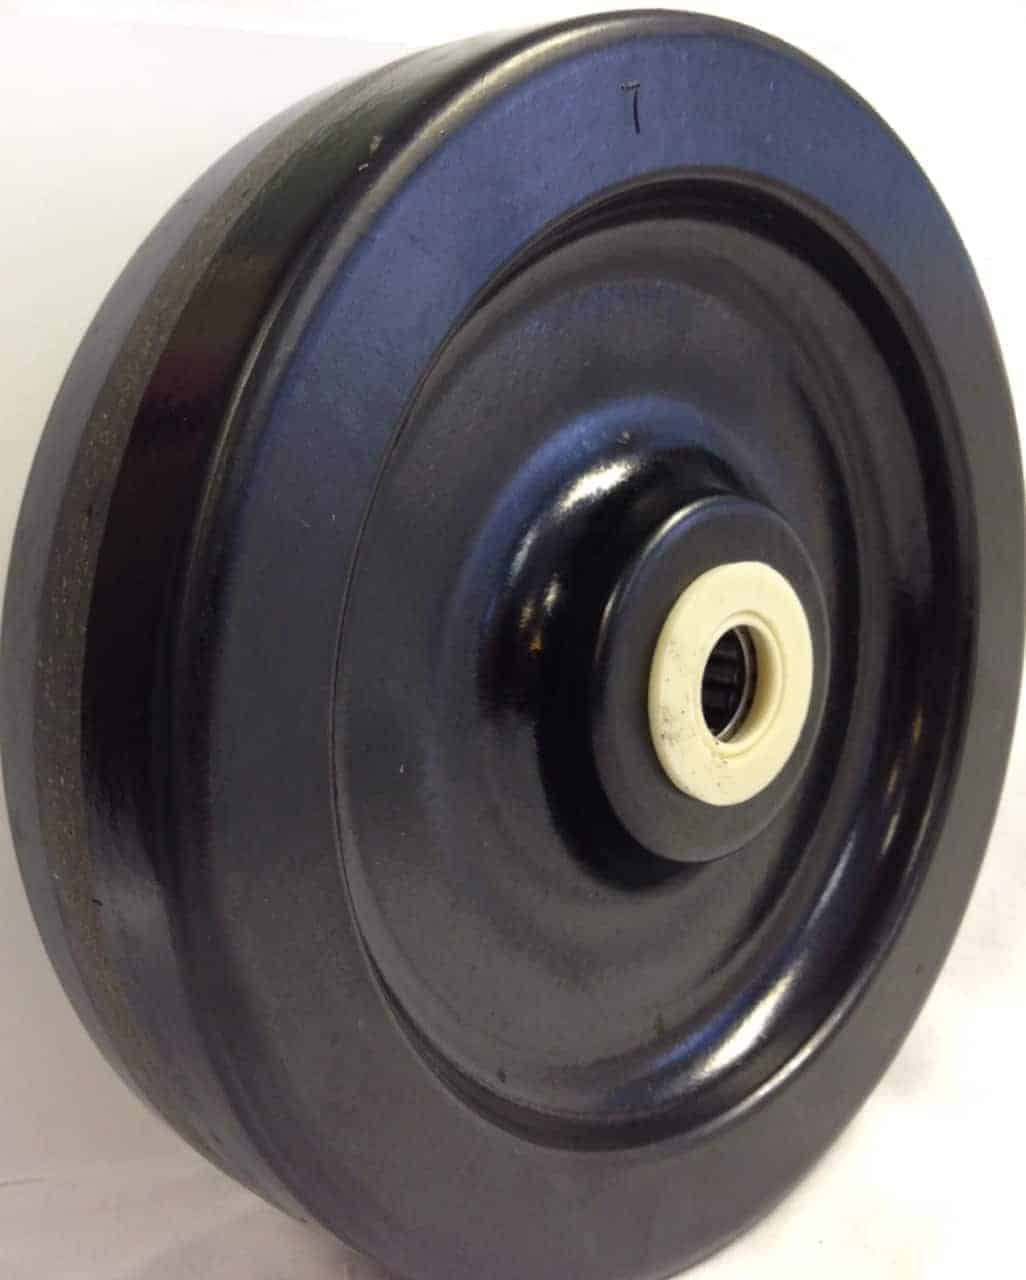 10″ Phenolic Wheel With 3-1/4 Hub 1″ Roller Bearing 2900 Lbs Capacity